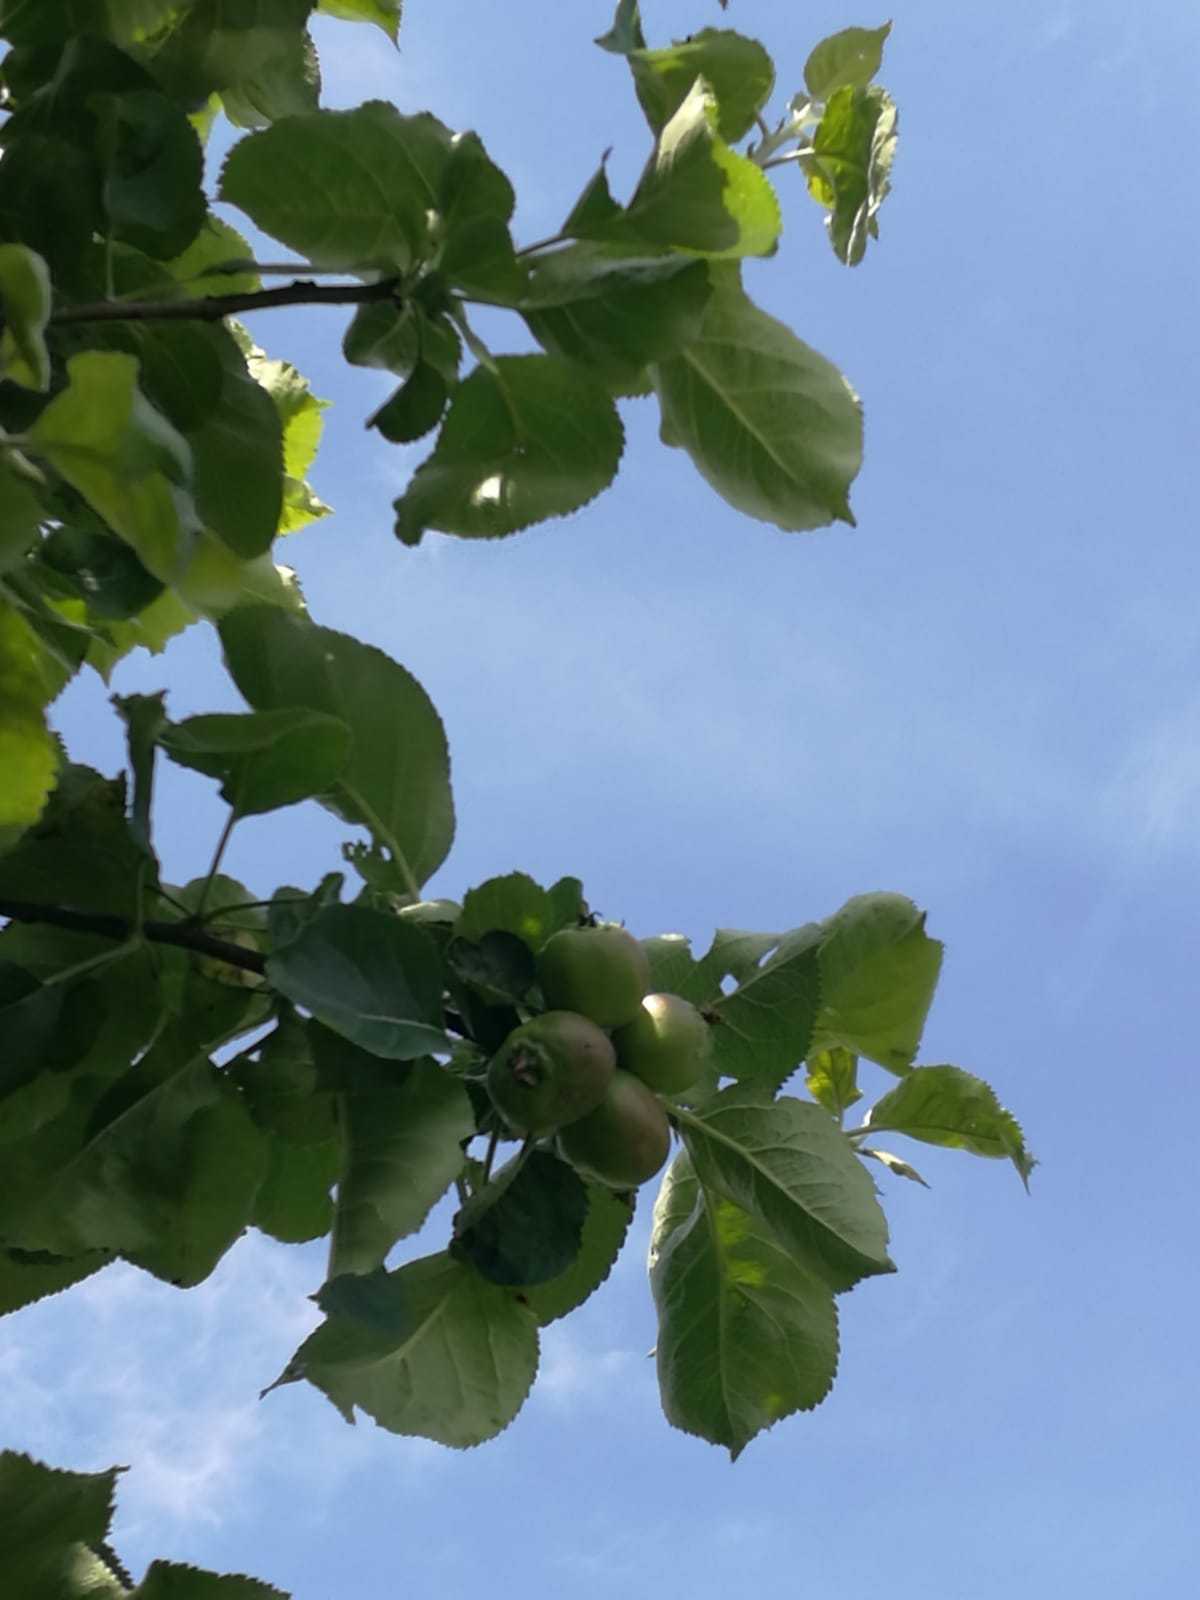 Small apples forming on the tree with a blue sky background